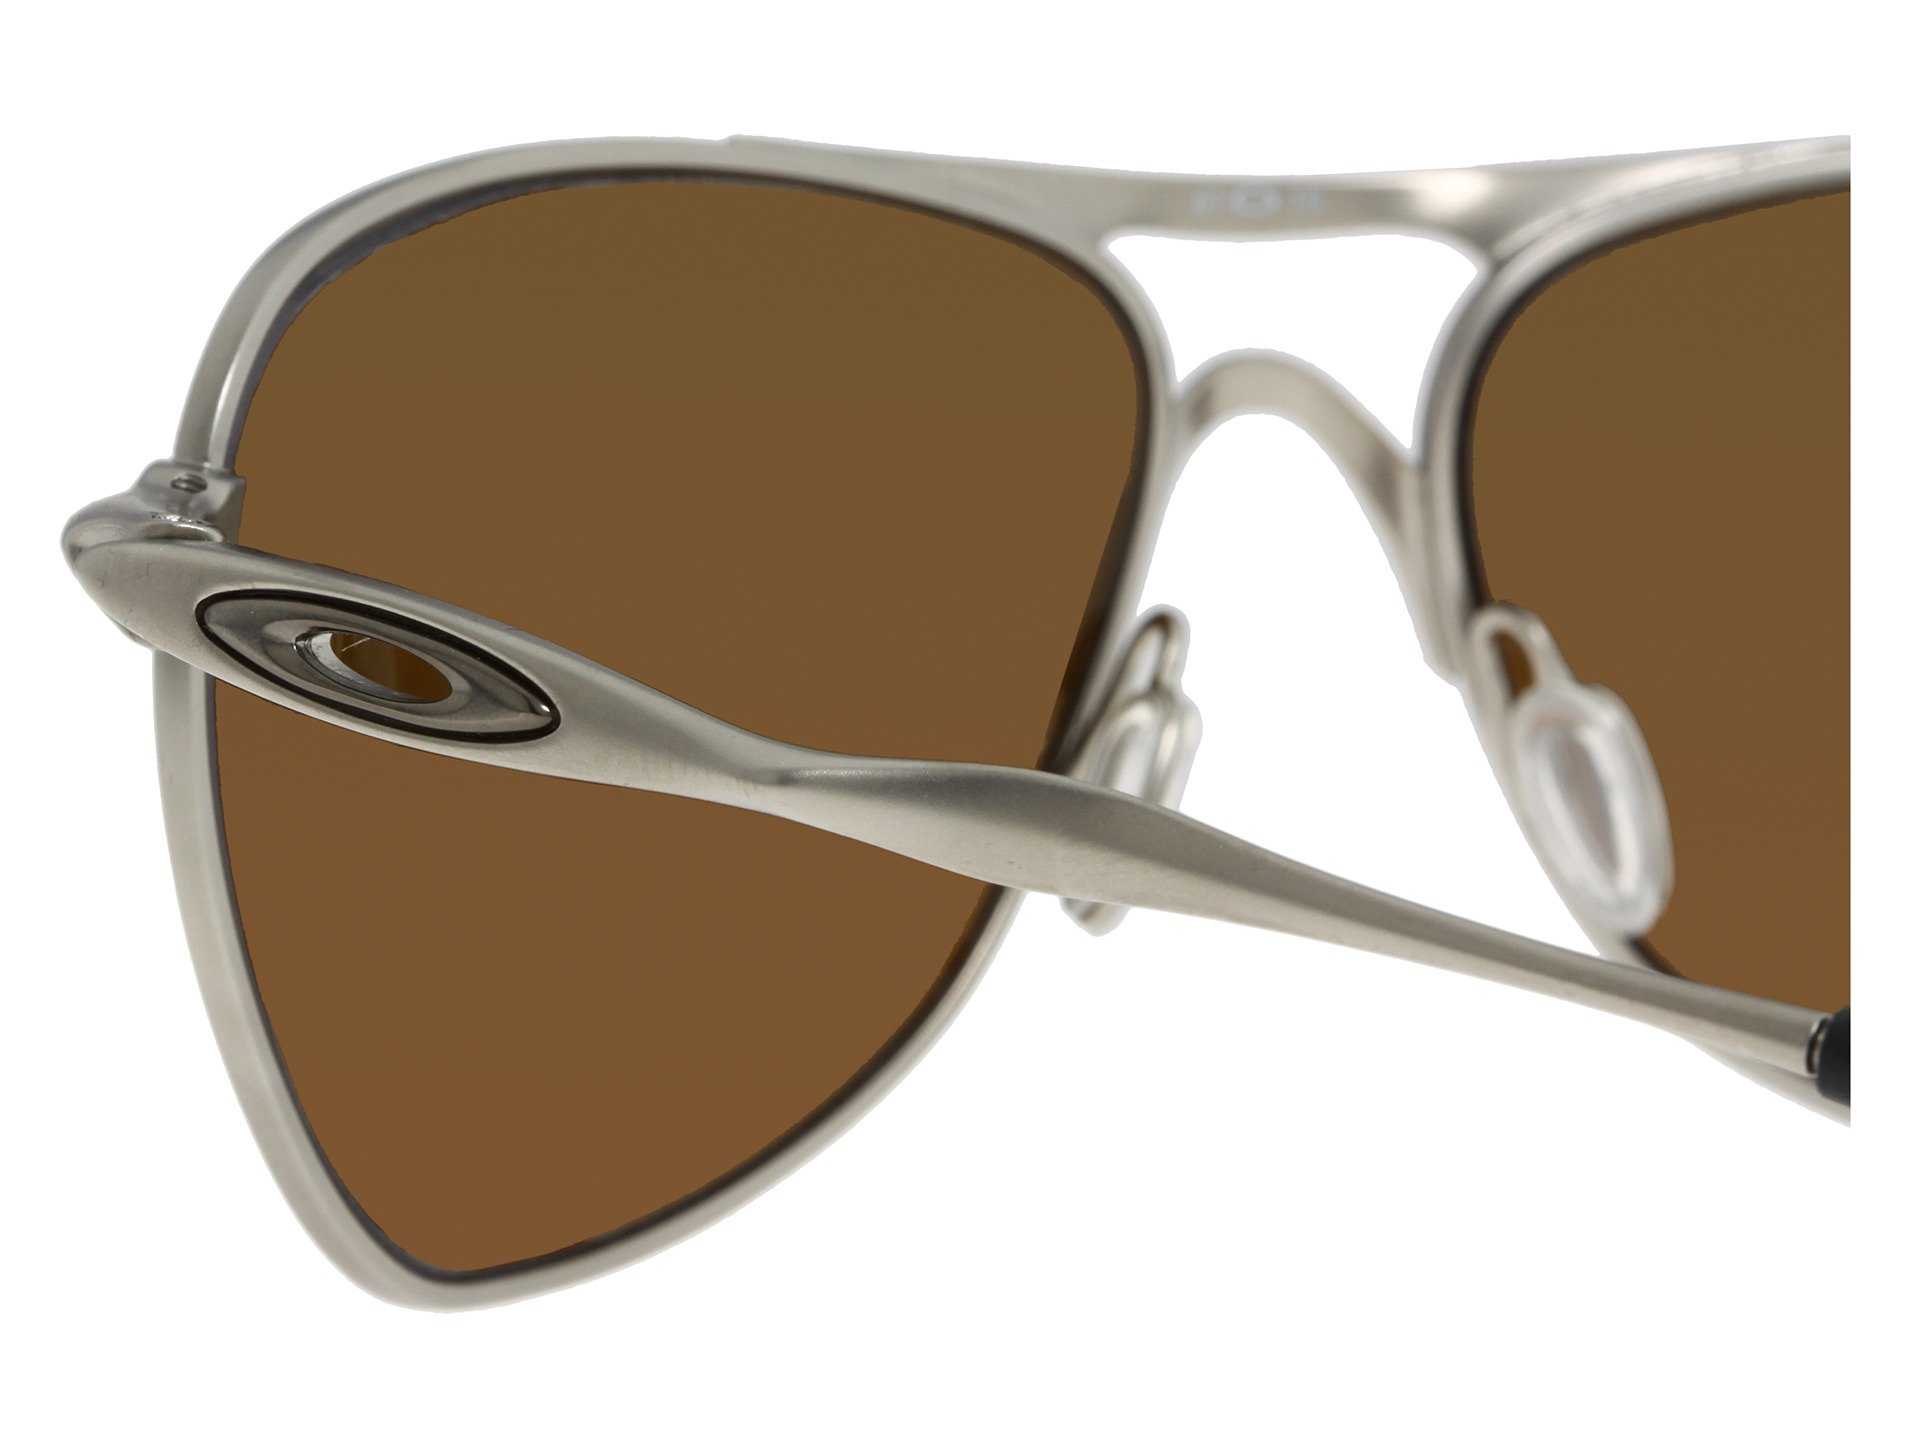 2249dbf589 Oakley TI Crosshair Polarized at www.isefac-alternance.fr